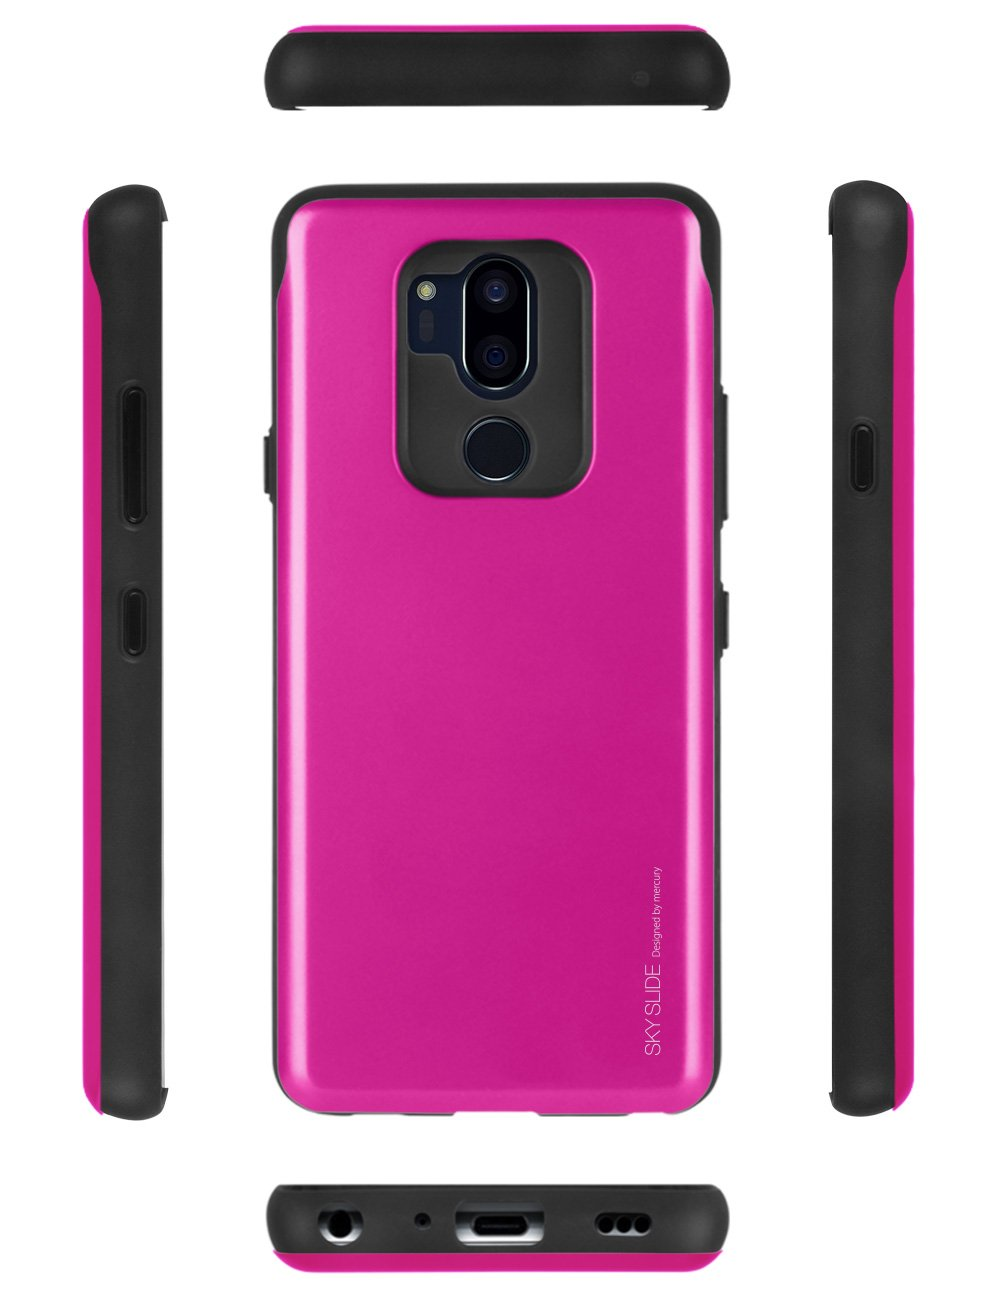 Lg G7 Thinq Case Mercury Sliding Card Goospery Iphone 7 Sky Slide Bumper Lime Holder Protective Dual Layer Tpu Pc Cover With Slot Wallet For